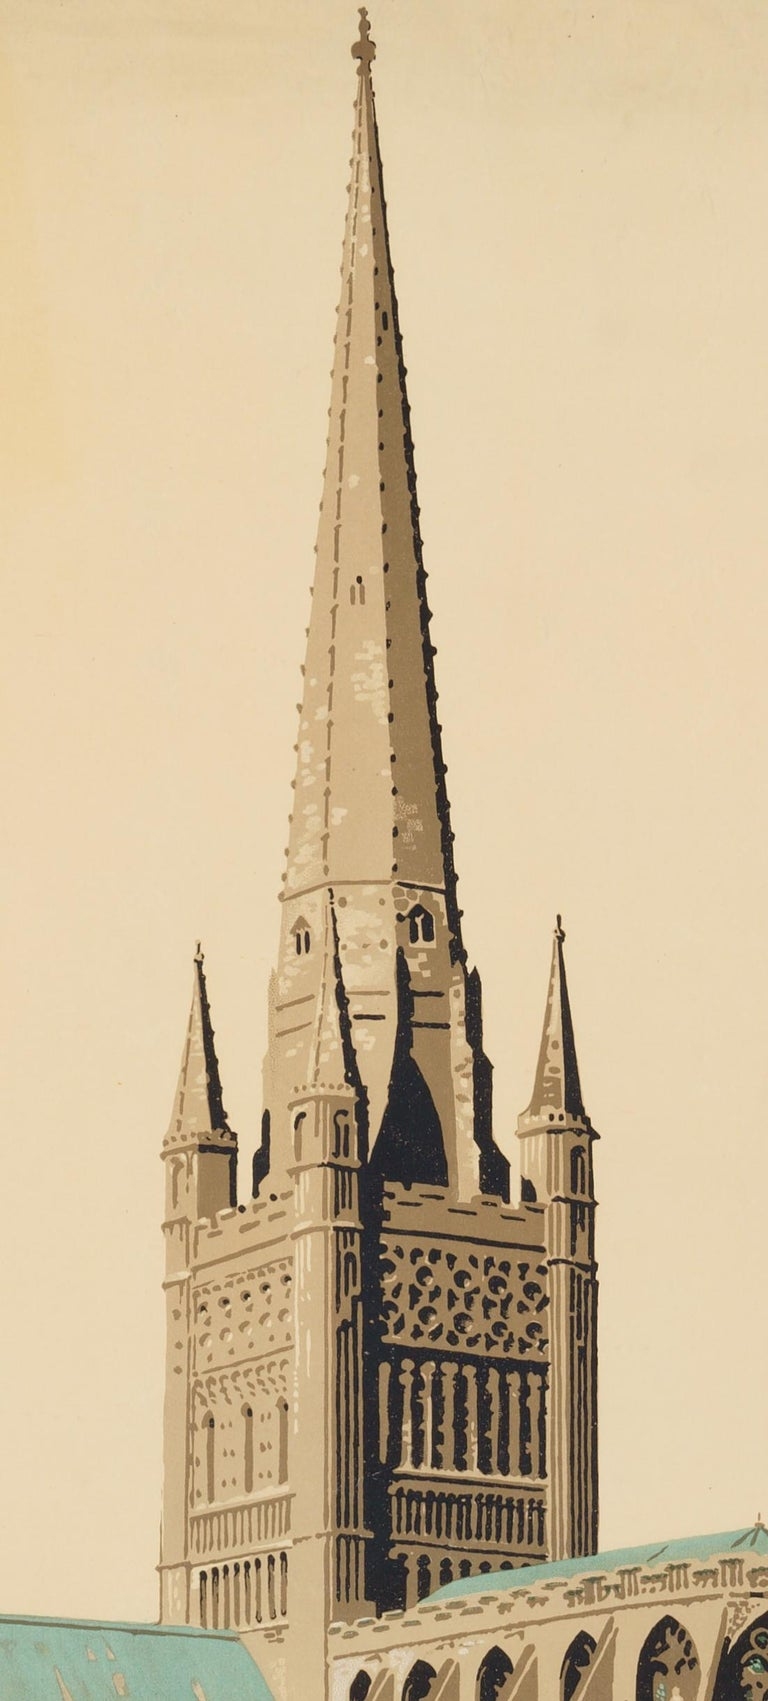 Norwich  –The Cathedral Route  Original Vintage British Travel Poster - Print by Frank Newbould